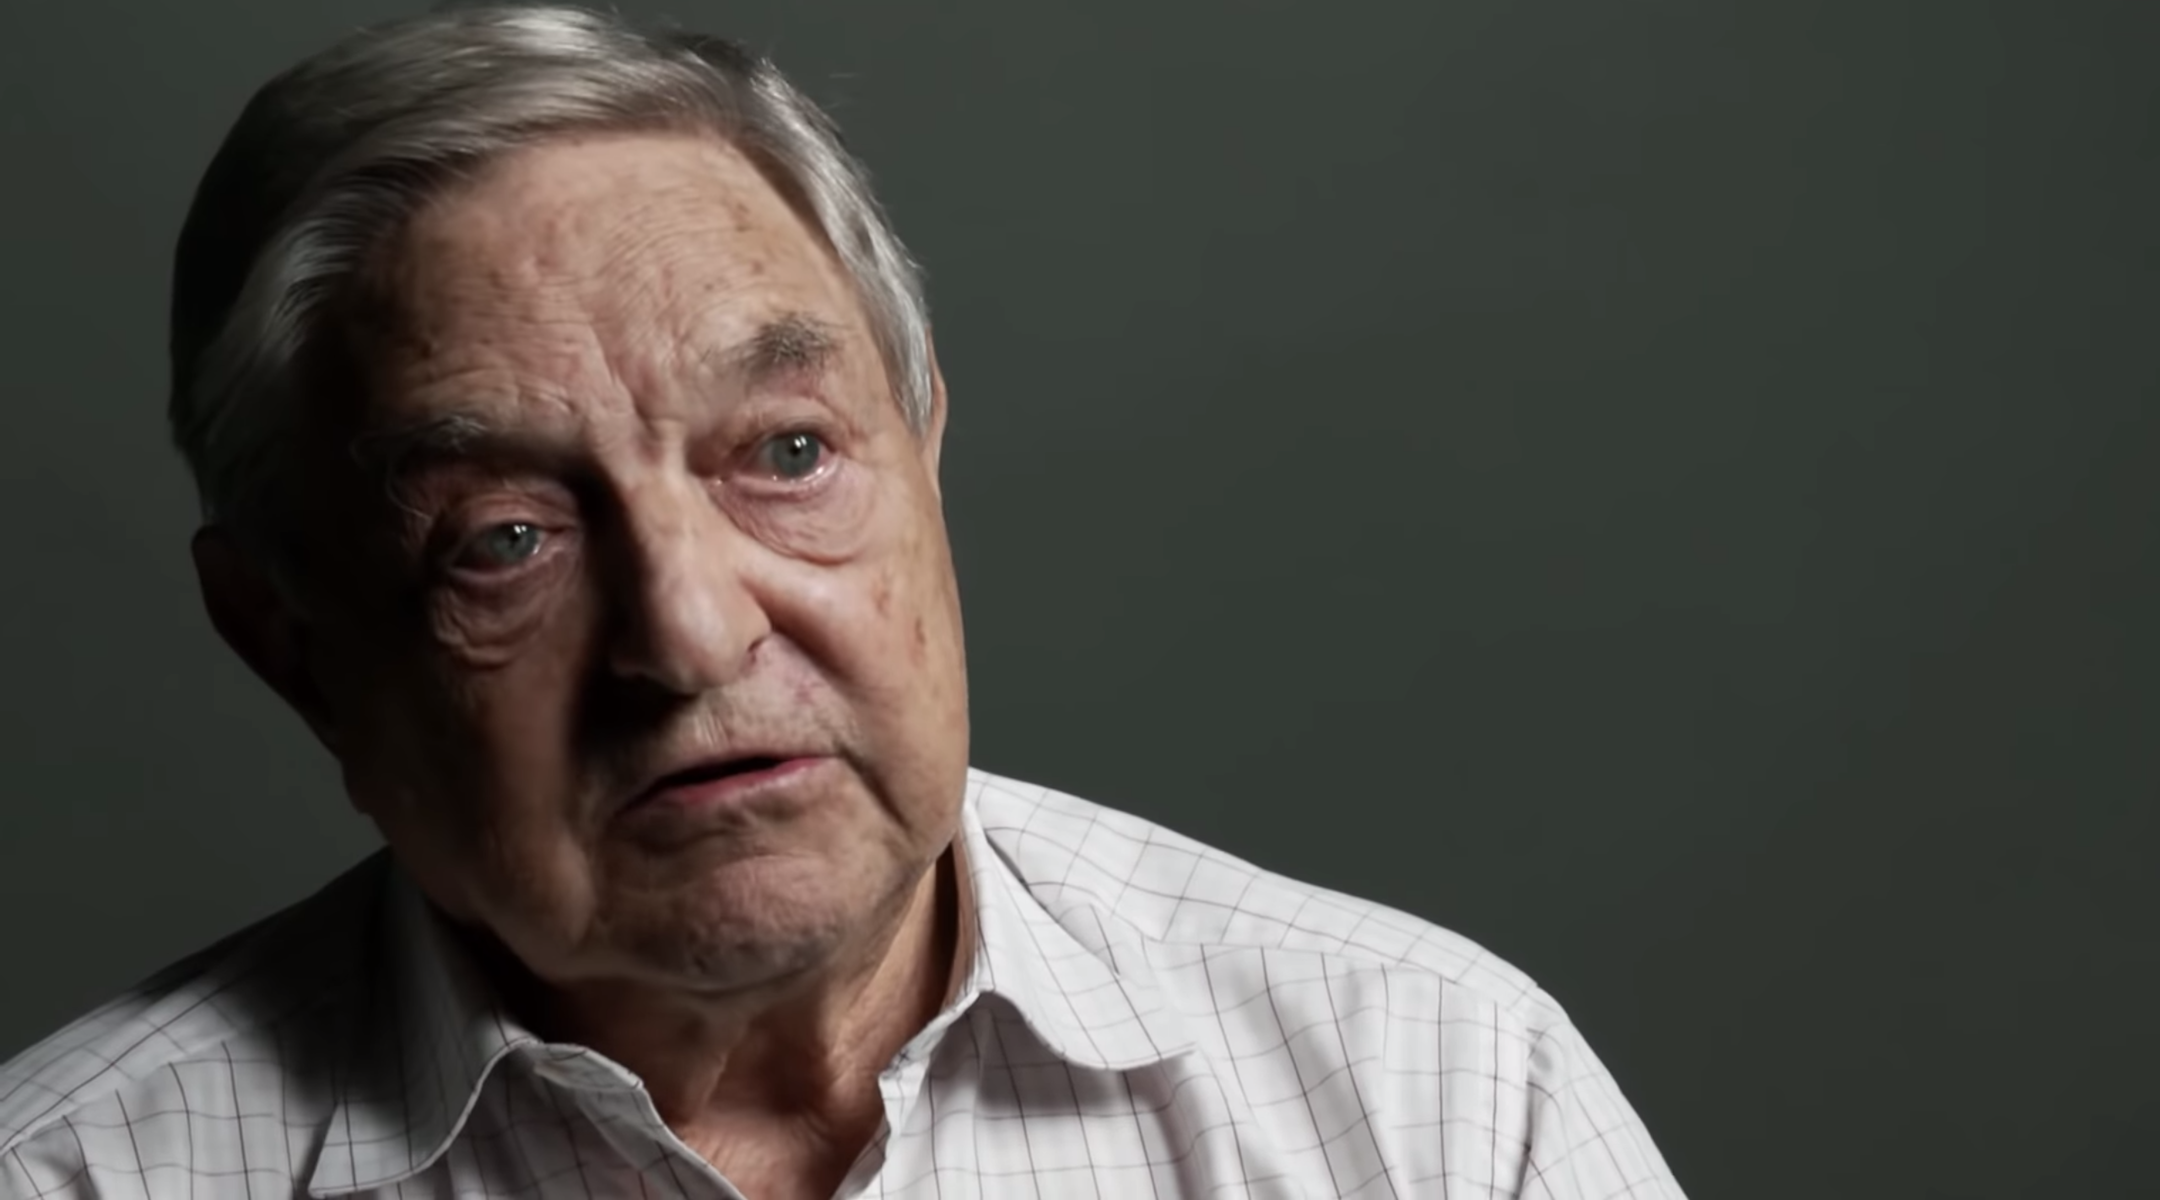 A new documentary about George Soros, pictured above giving an interview in the film's trailer, has been called a 'hagiography.' (Screenshot)